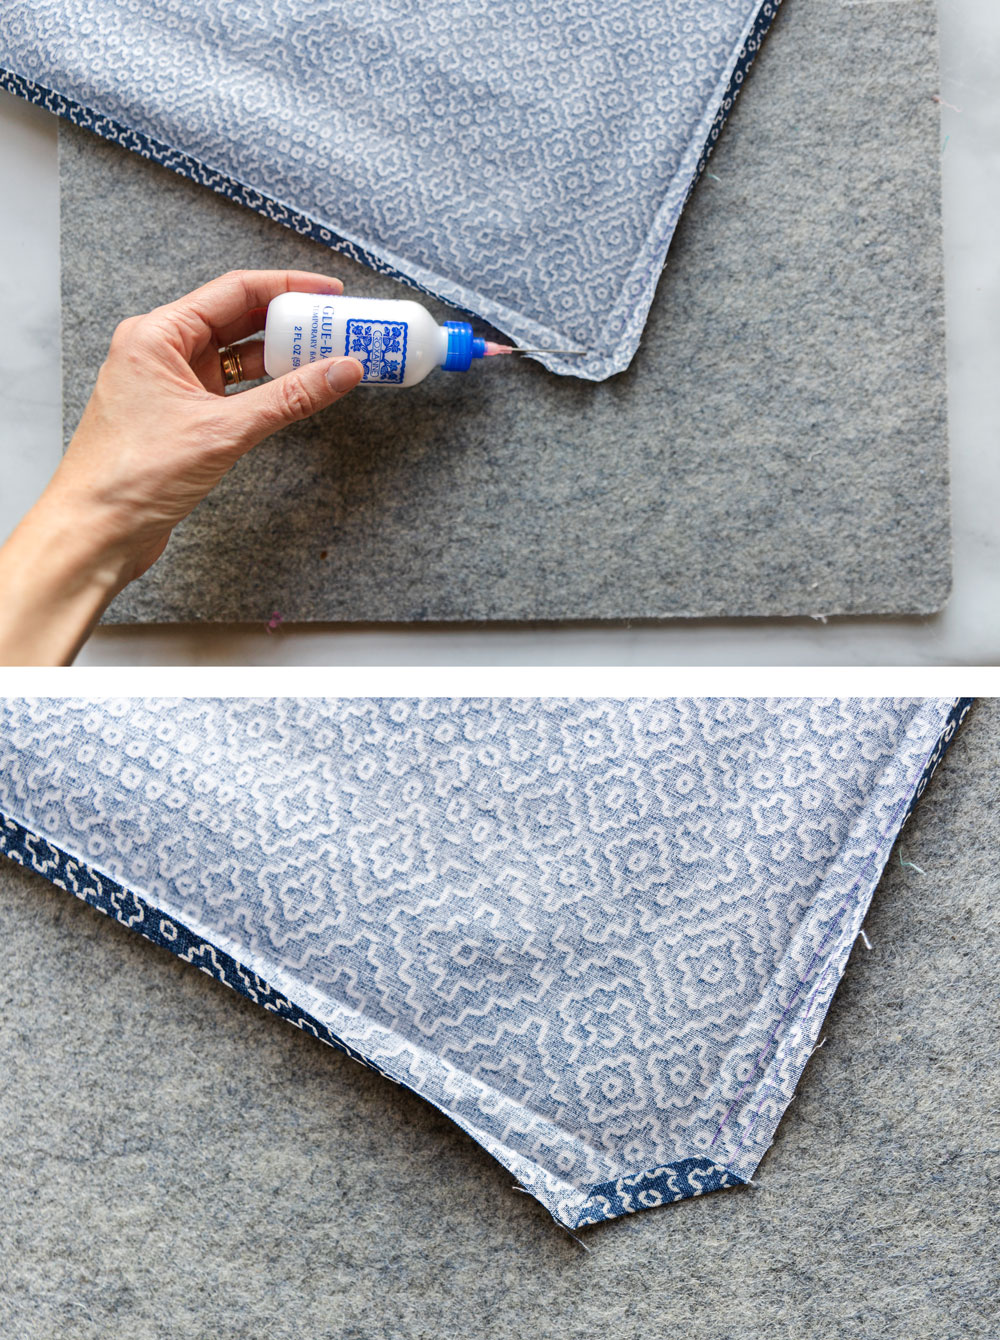 Learn how to sew a napkin in this beginner-friendly DIY cloth napkins tutorial. This fat quarter friendly sewing tutorial is incredibly fast and easy! suzyquilts.com #napkinstutorial #sewingdiy